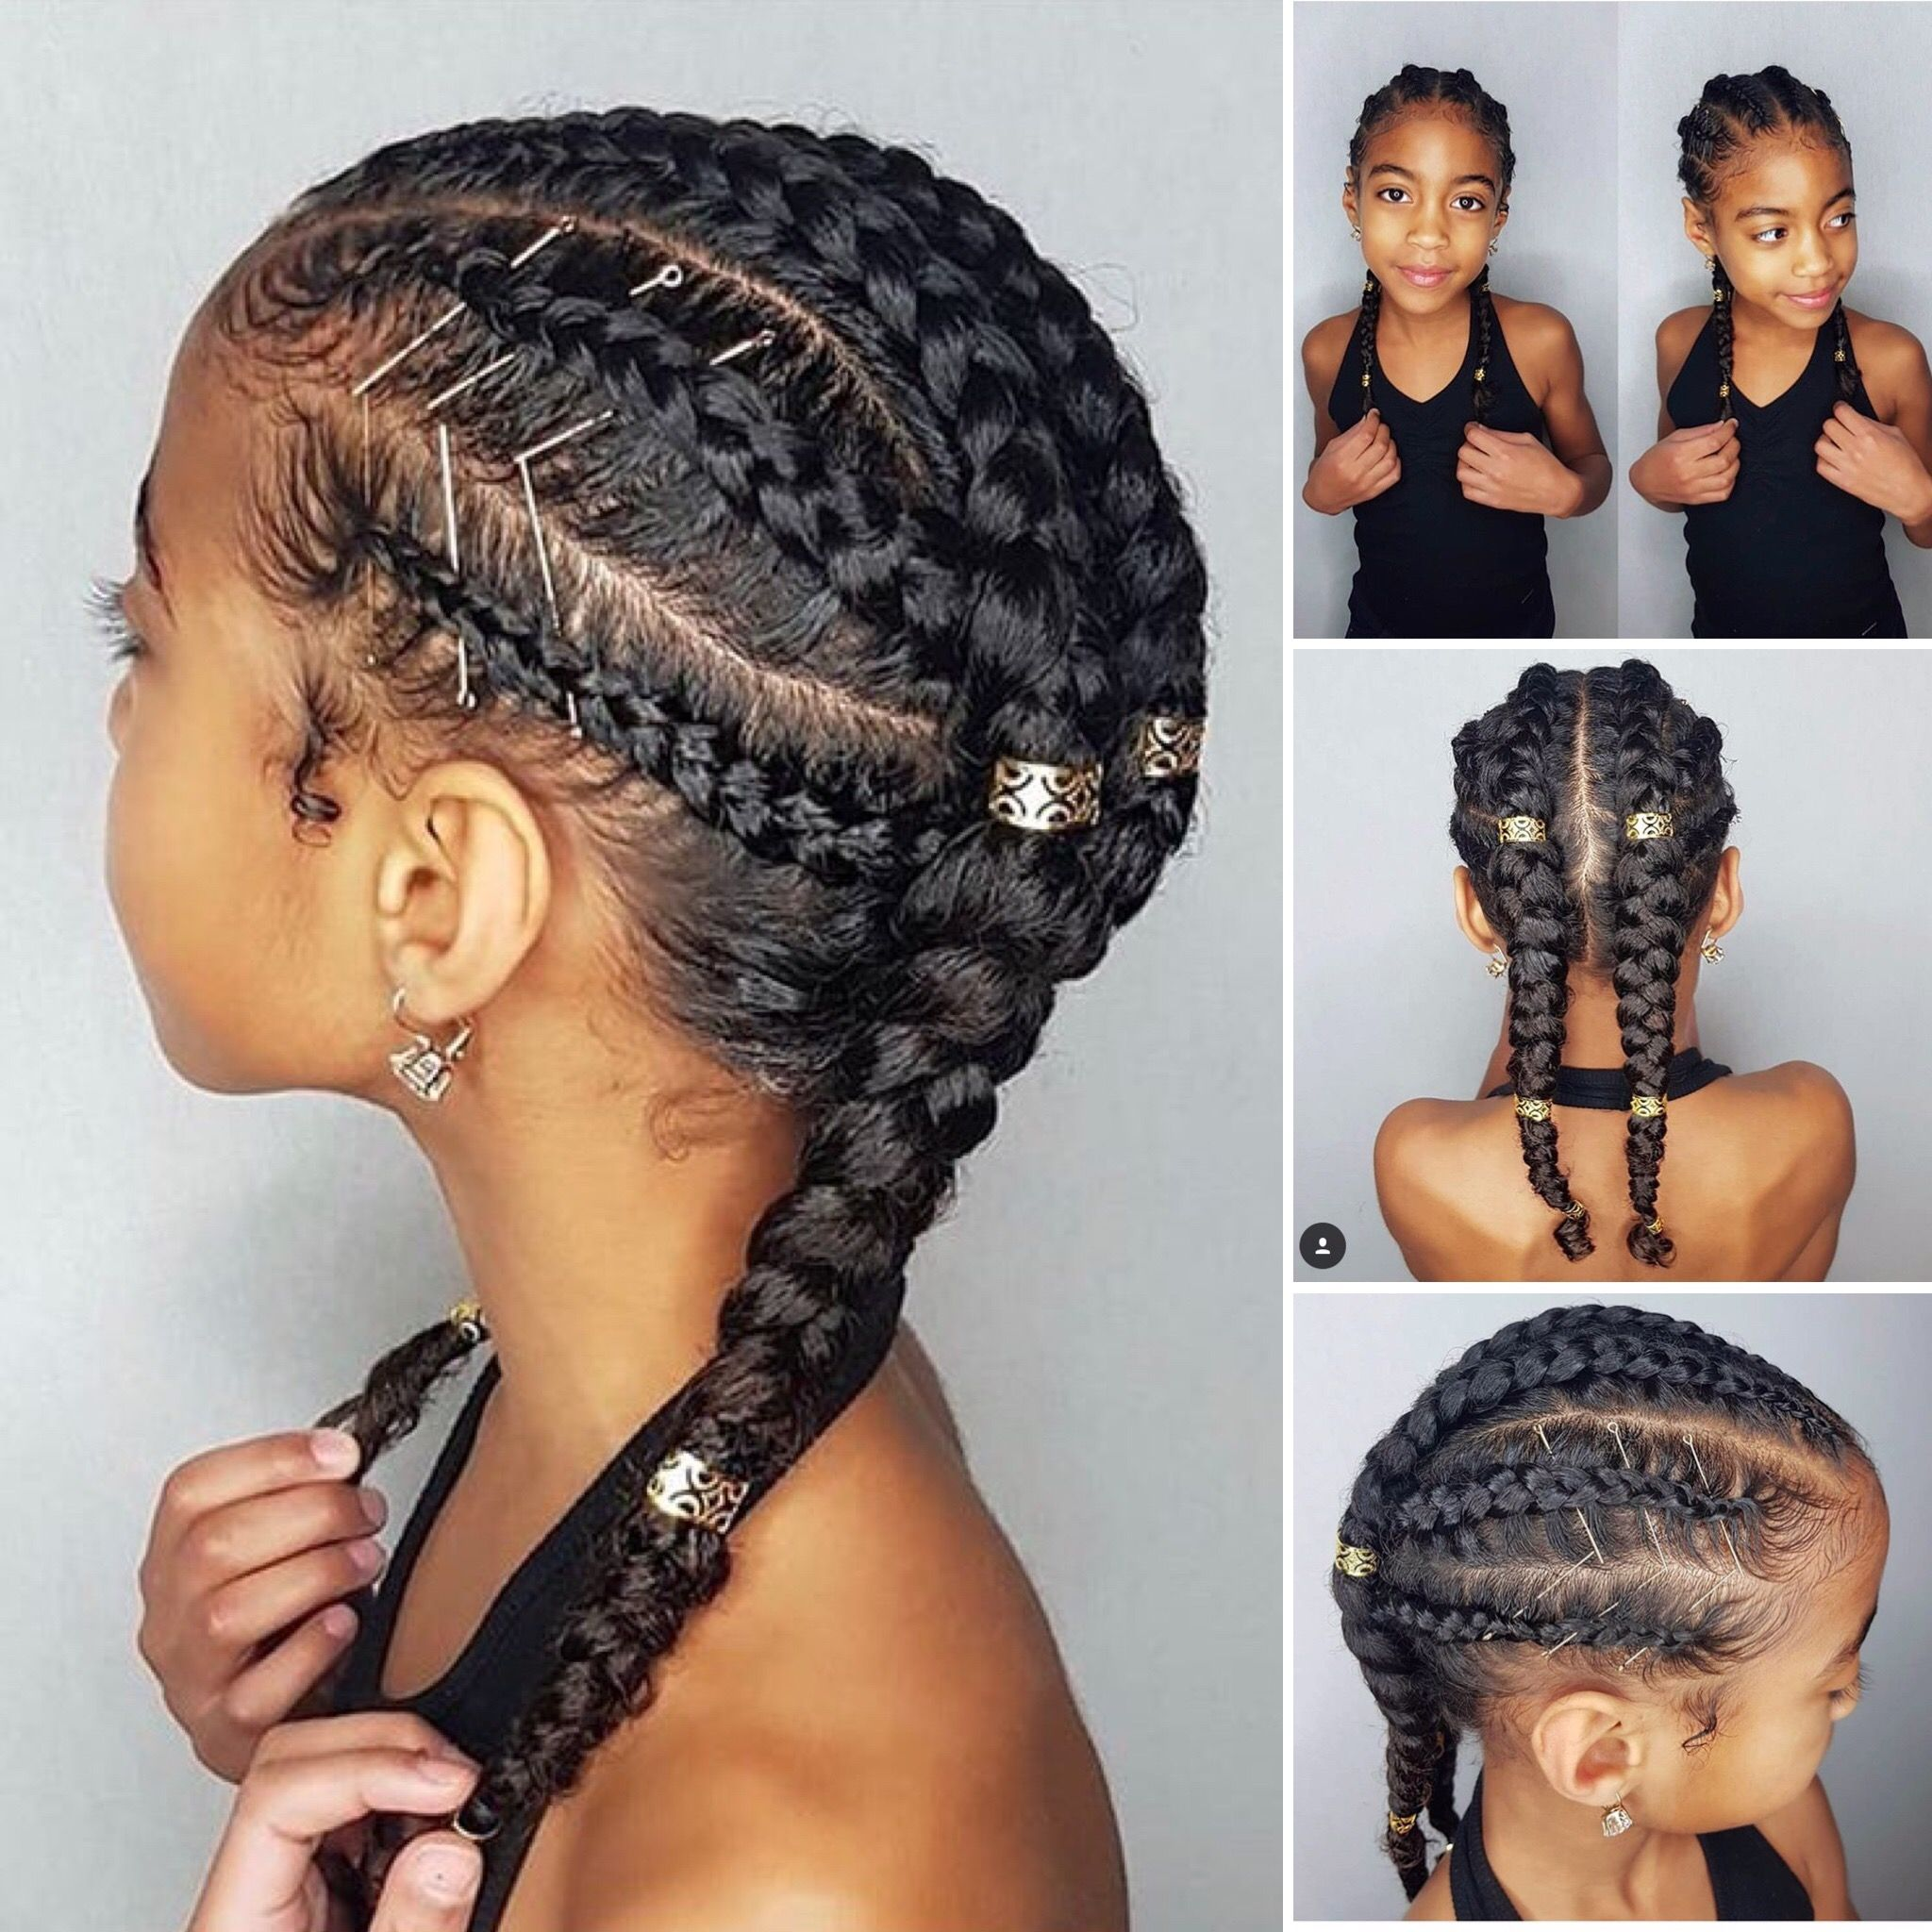 This Hairstyle Is Too Cute Hair Styles Mixed Race Hairstyles Girls Hairstyles Braids